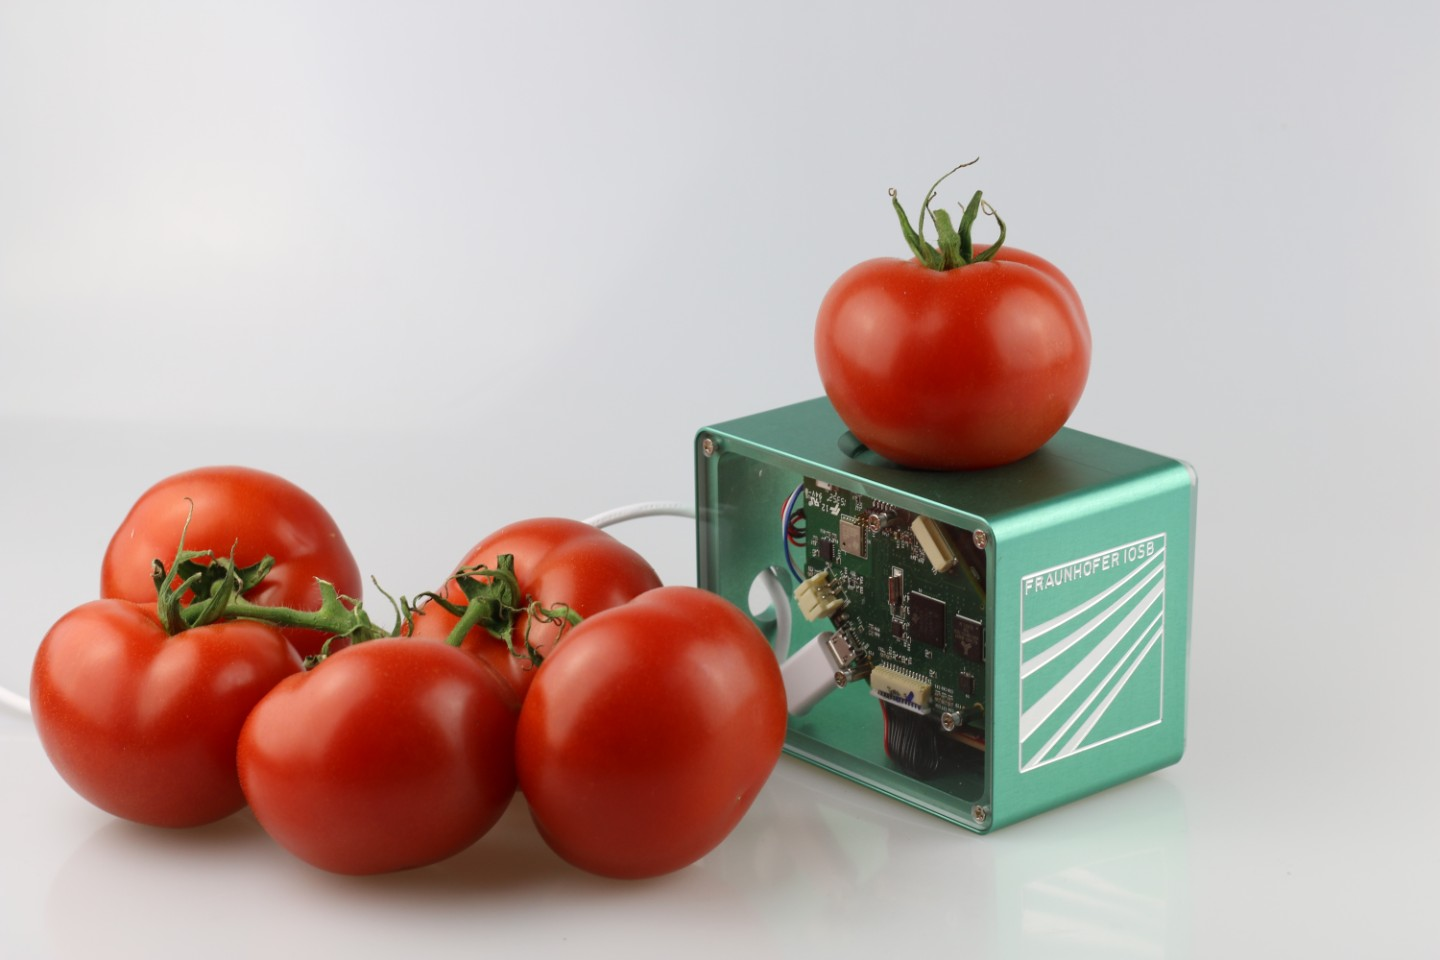 Tomatoes on an electronic device